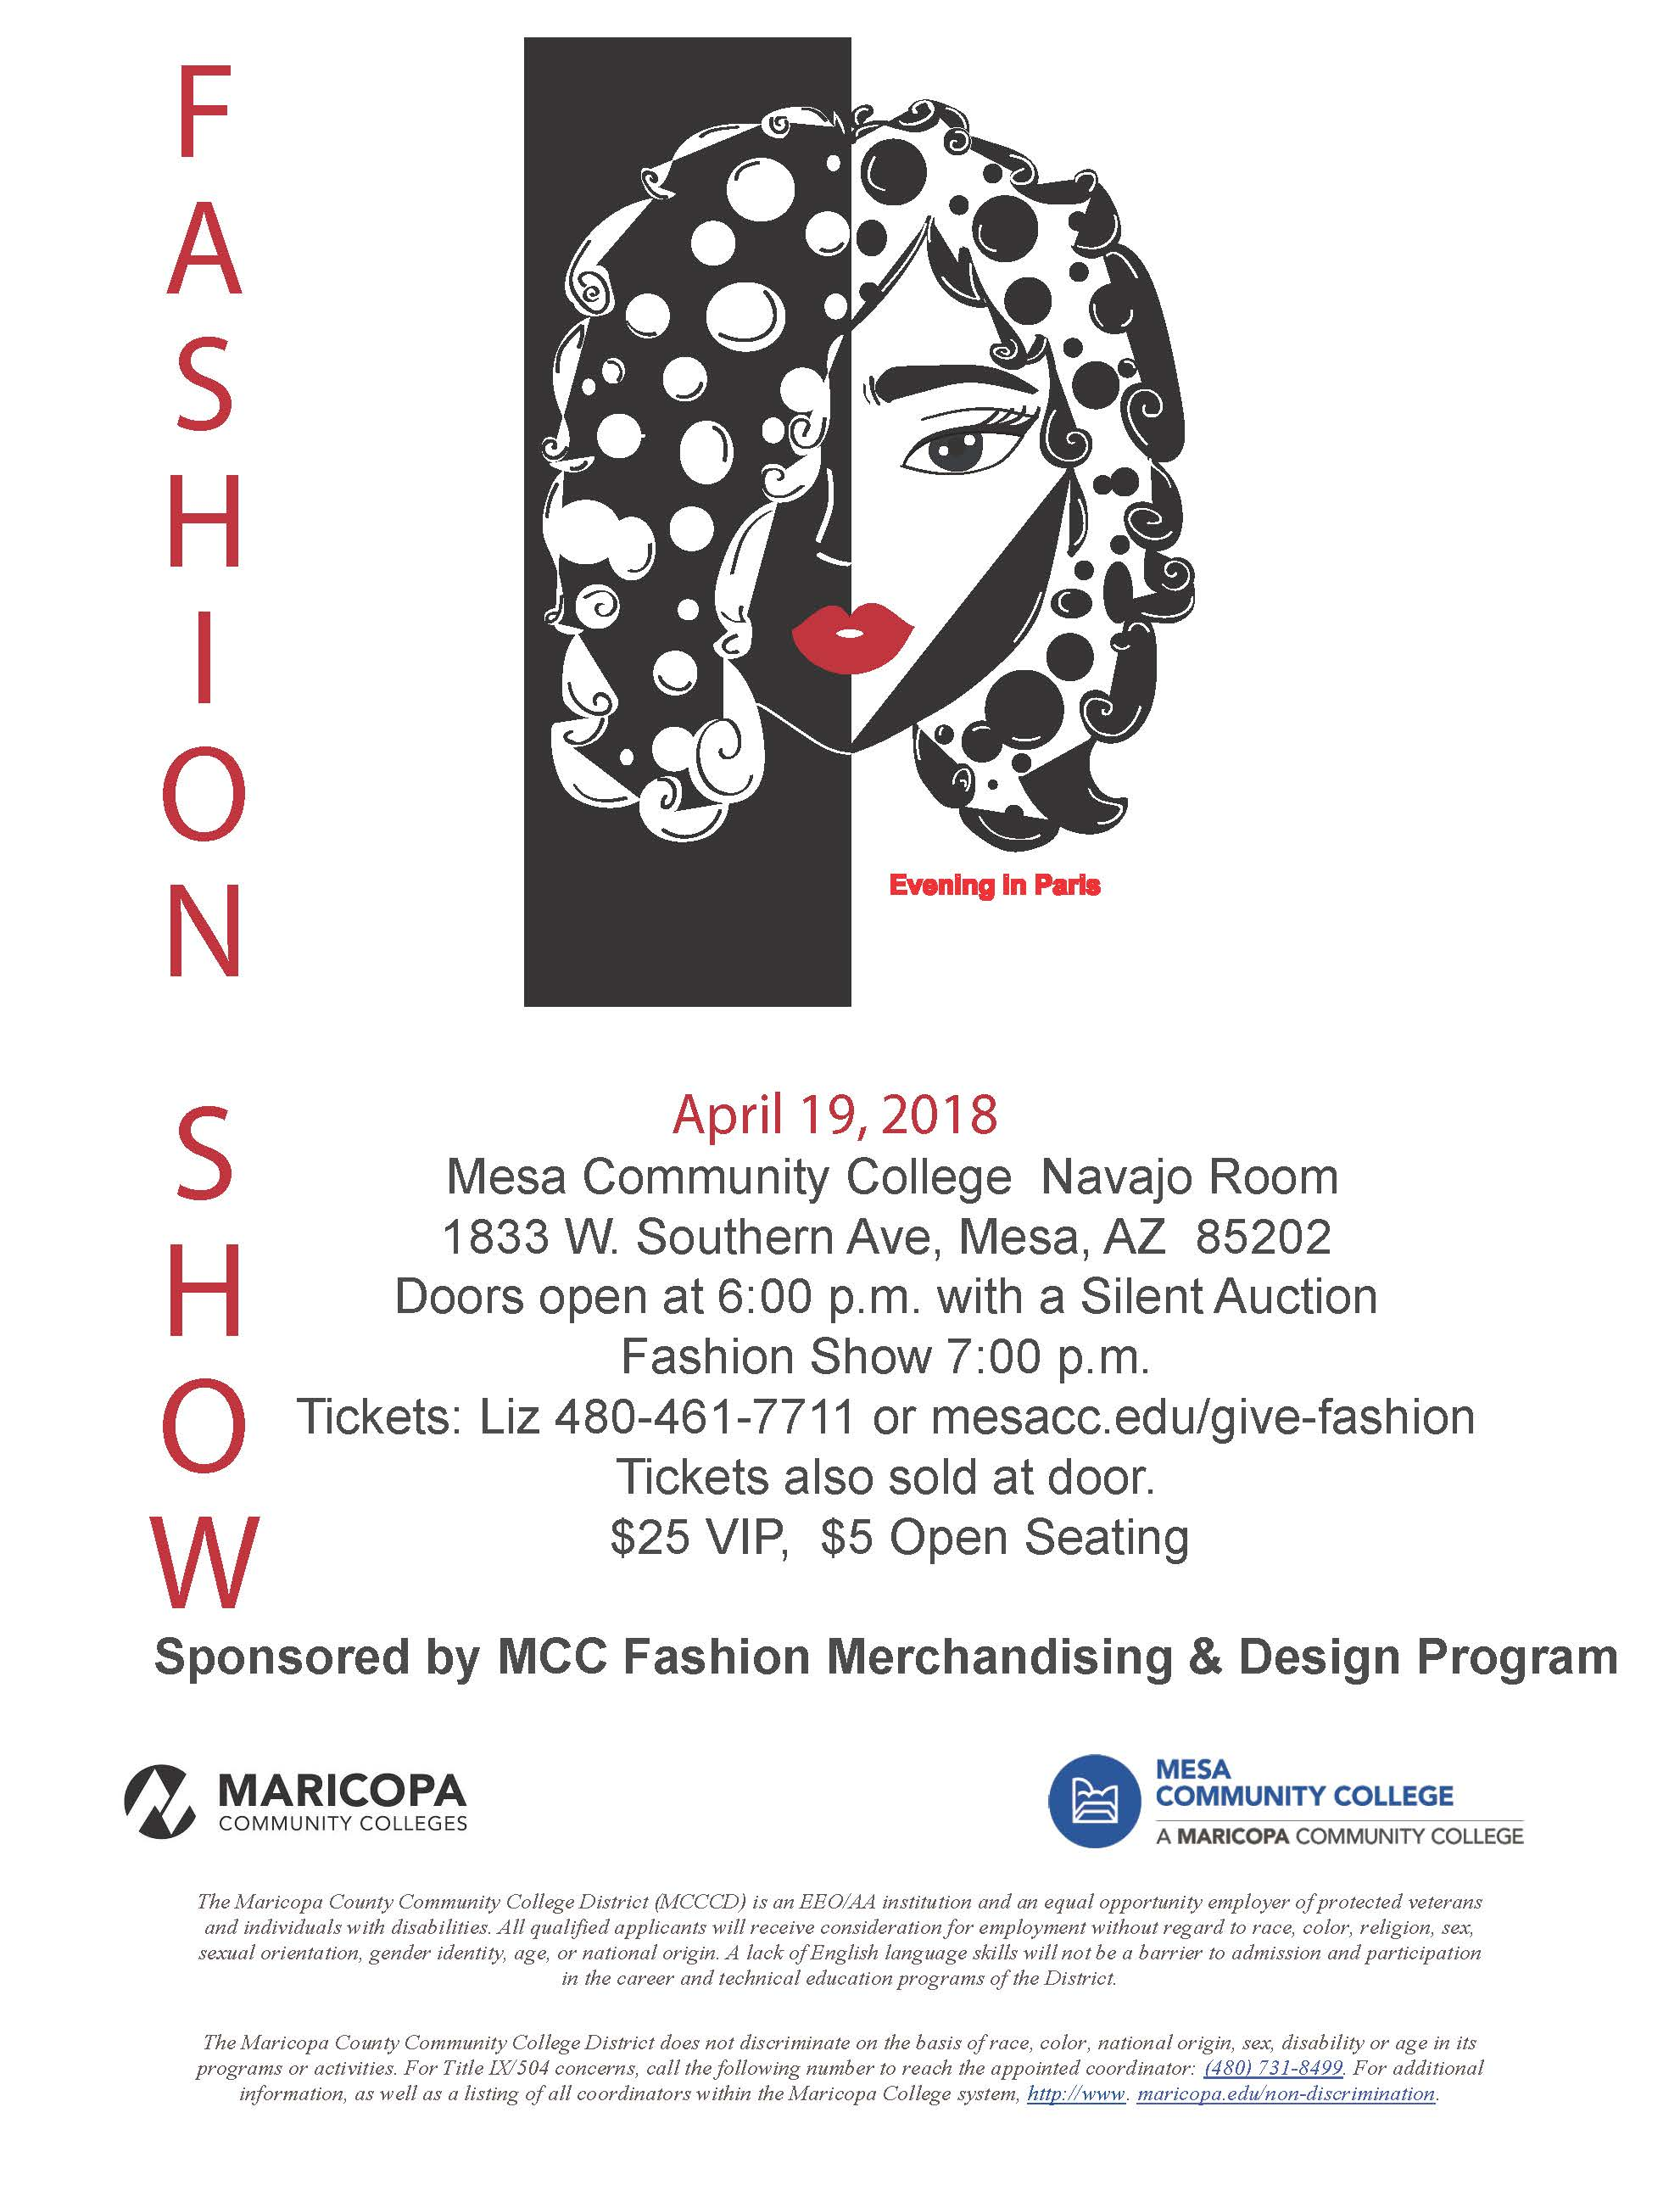 Lack Of College Disability Information >> Mcc Hosts 13th Annual Fashion Show Evening In Paris